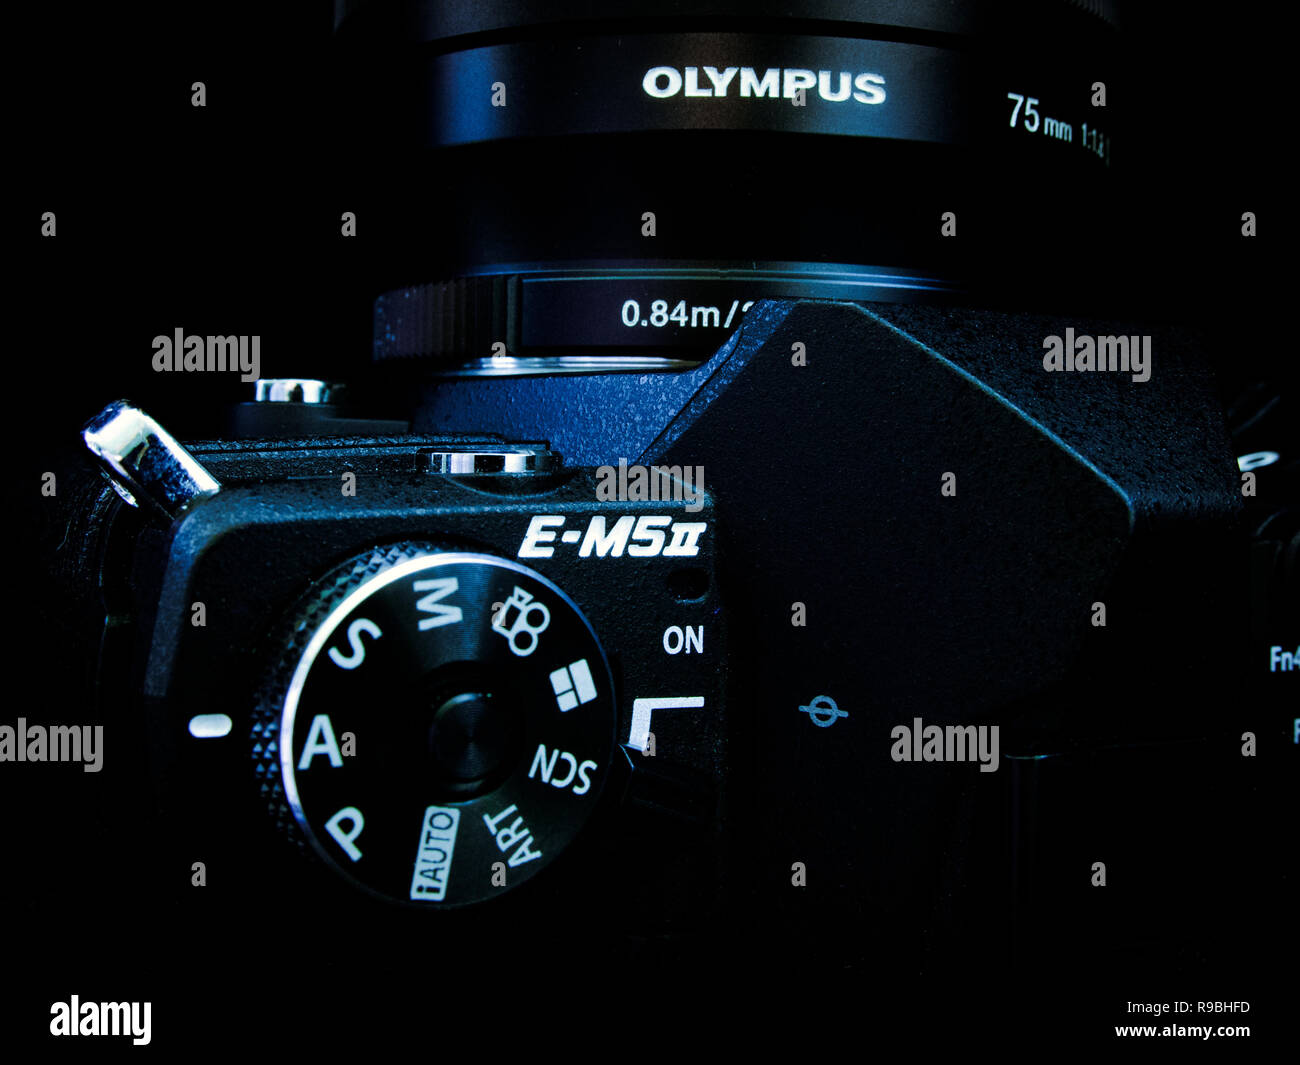 Belgium - Novemer 2018 : Close up Olympus MFT camer a with 75mm lens. Dark with blue shine. - Stock Image